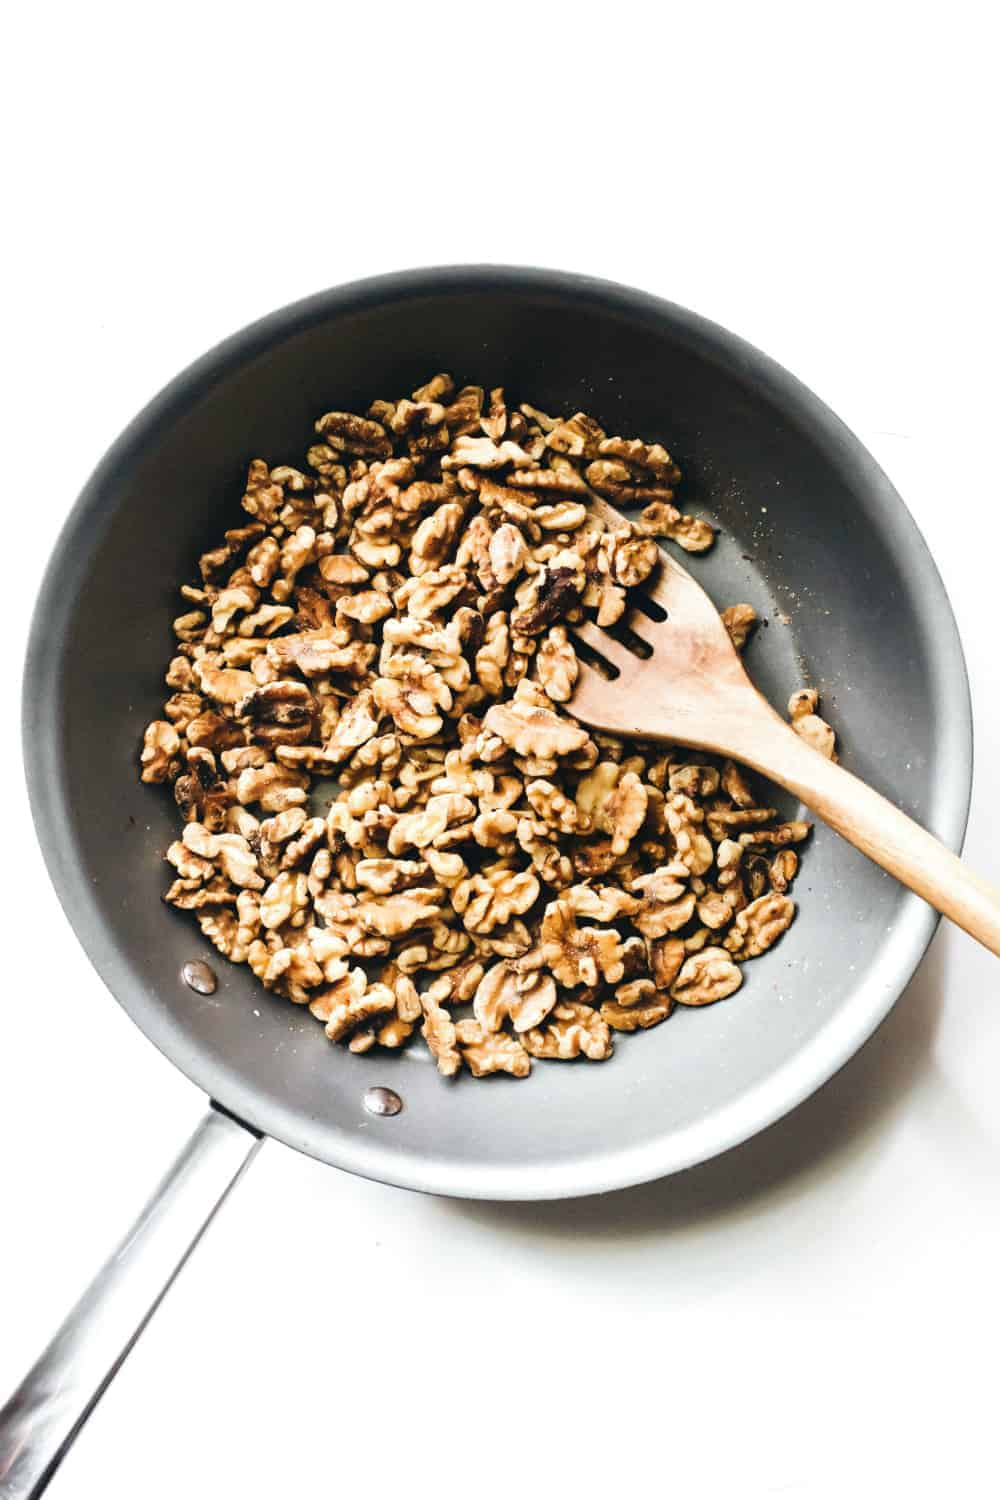 Walnuts in a skillet being stirred with a wooden spoon